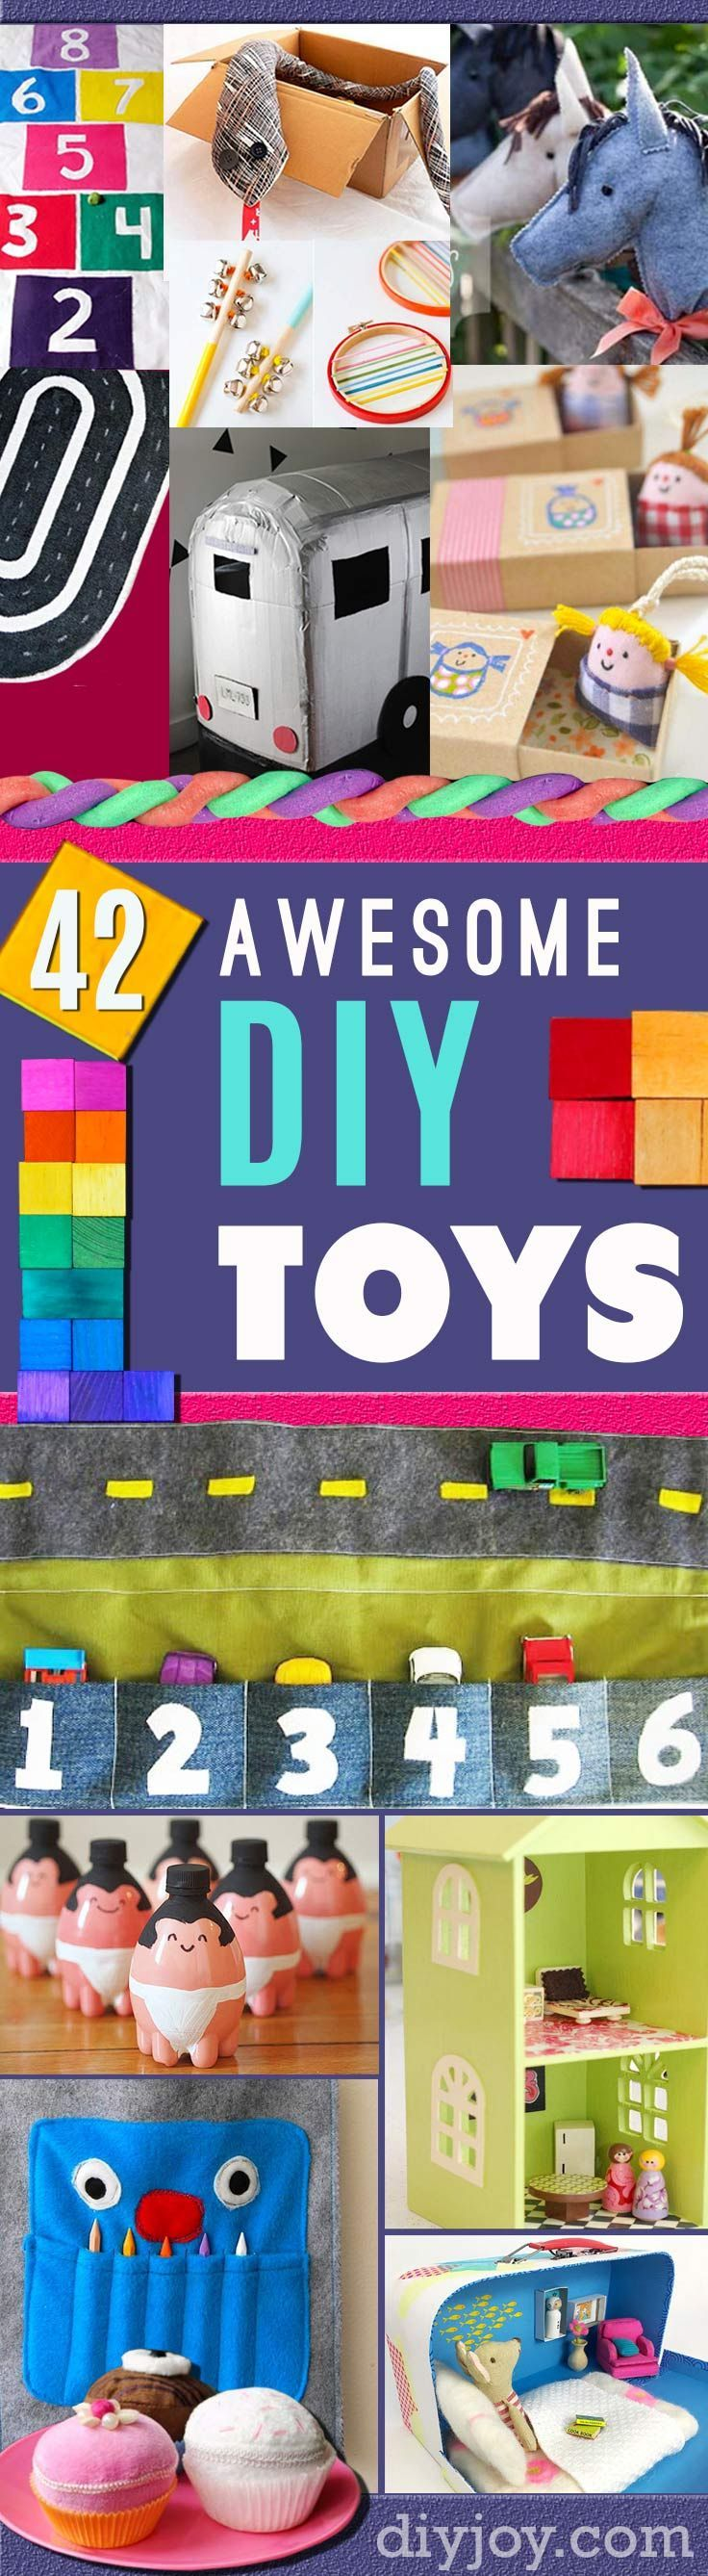 Dress up xl games - 41 Fun Diy Gifts To Make For Kids Perfect Homemade Christmas Presents